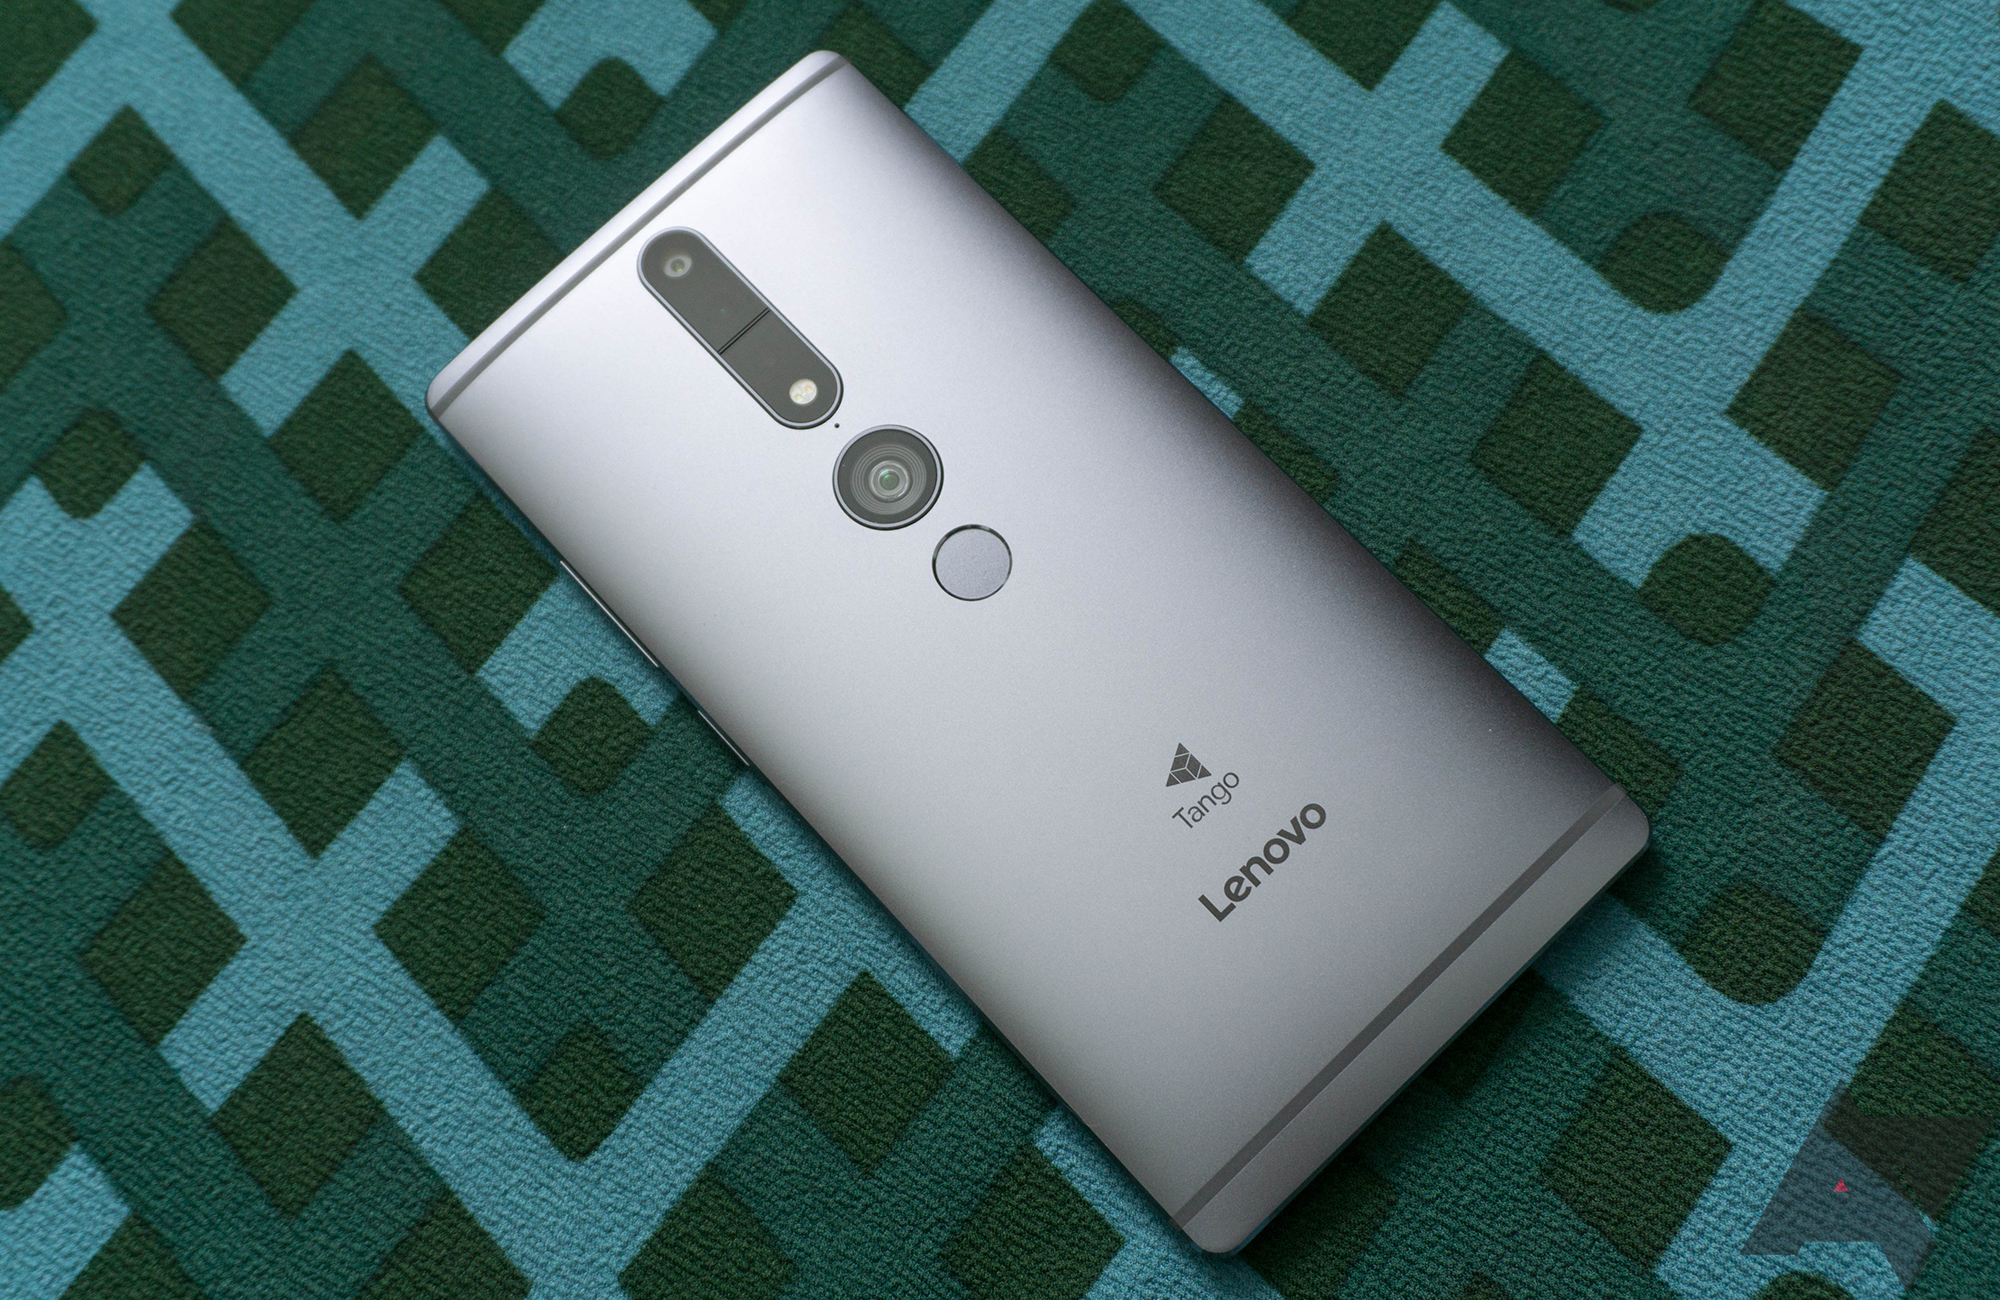 Lenovo says the entire Phab2 series, including the Phab2 Pro with